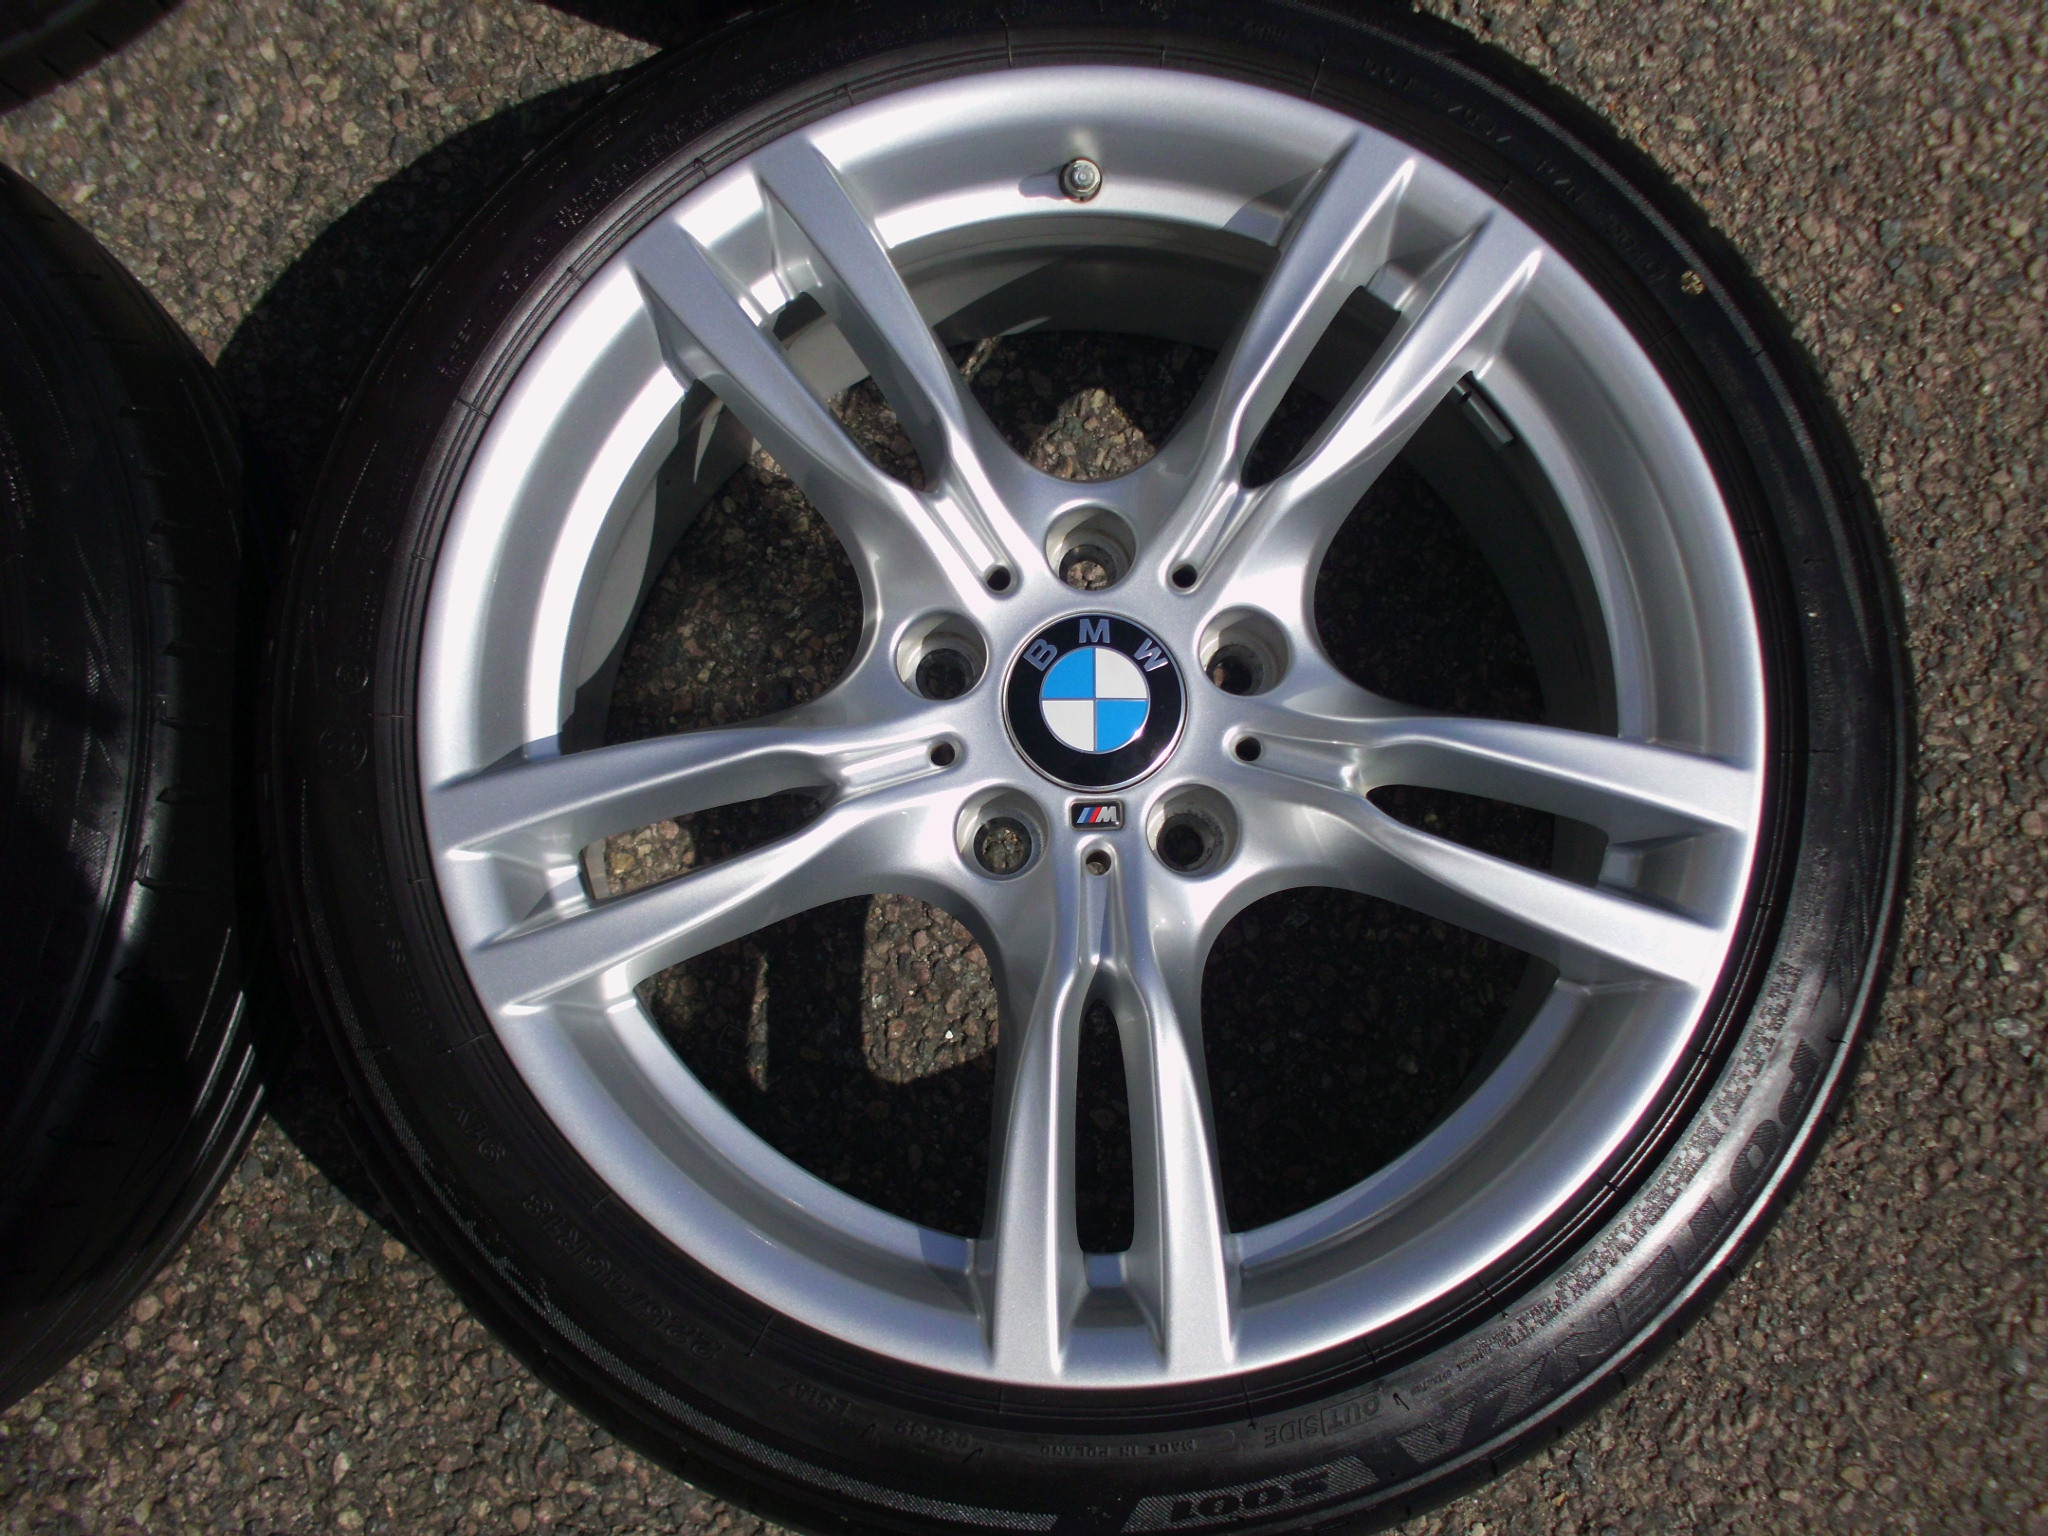 "USED 18"" GENUINE STYLE 400 M SPORT ALLOY WHEELS, WIDER REARS,EXCELLENT UNMARKED, INC GOOD BRIDGESTONE RUNFLAT TYRES + TPMS"